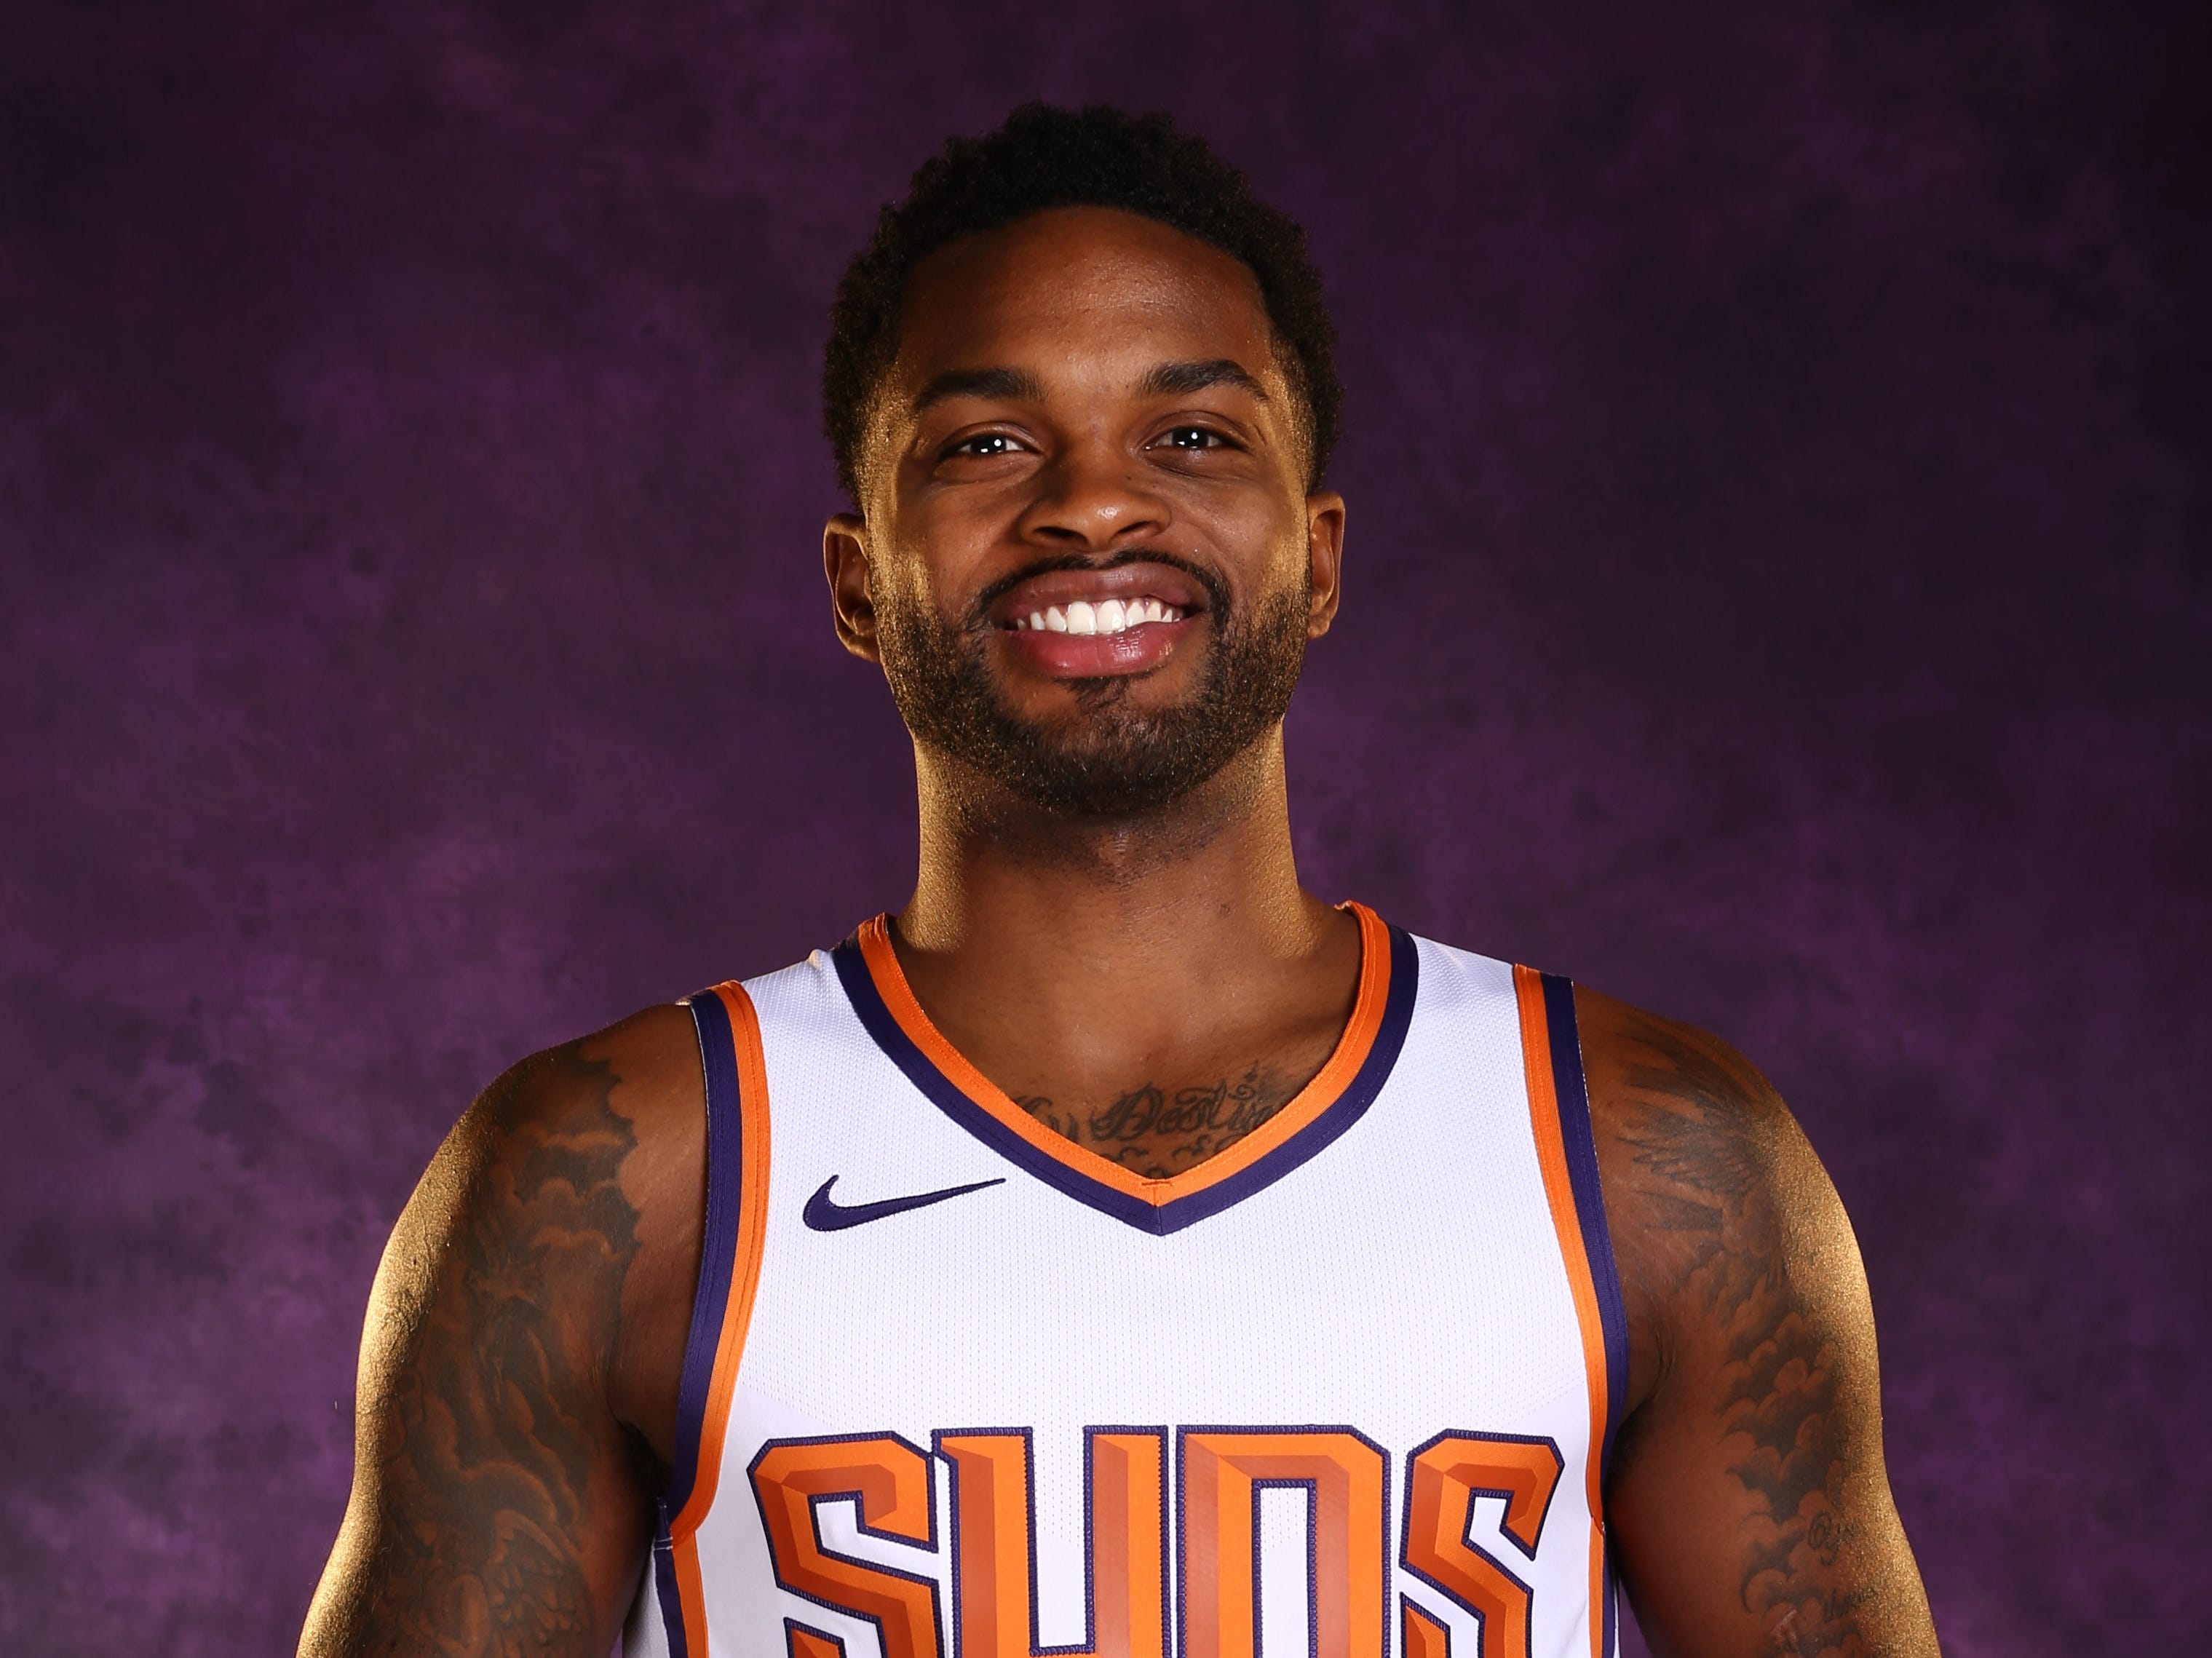 Troy Daniels || Position: Guard || Height/Weight: 6-4, 205